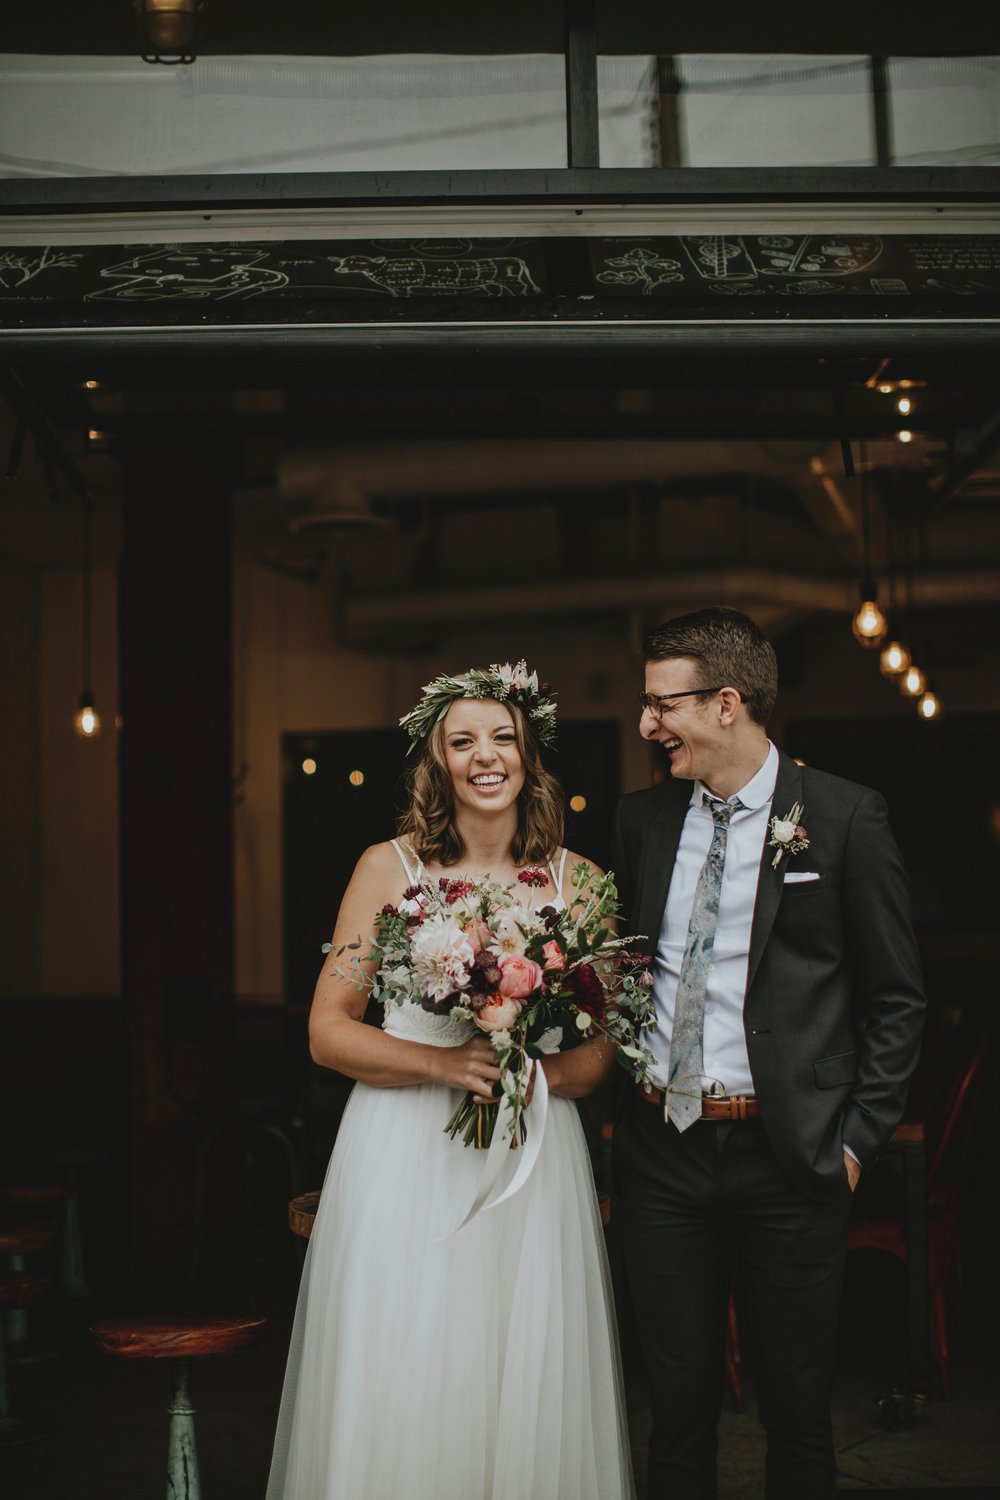 danaea_li_photography_Kaitlyn_Tom_Gastown_Wedding_0033.jpg